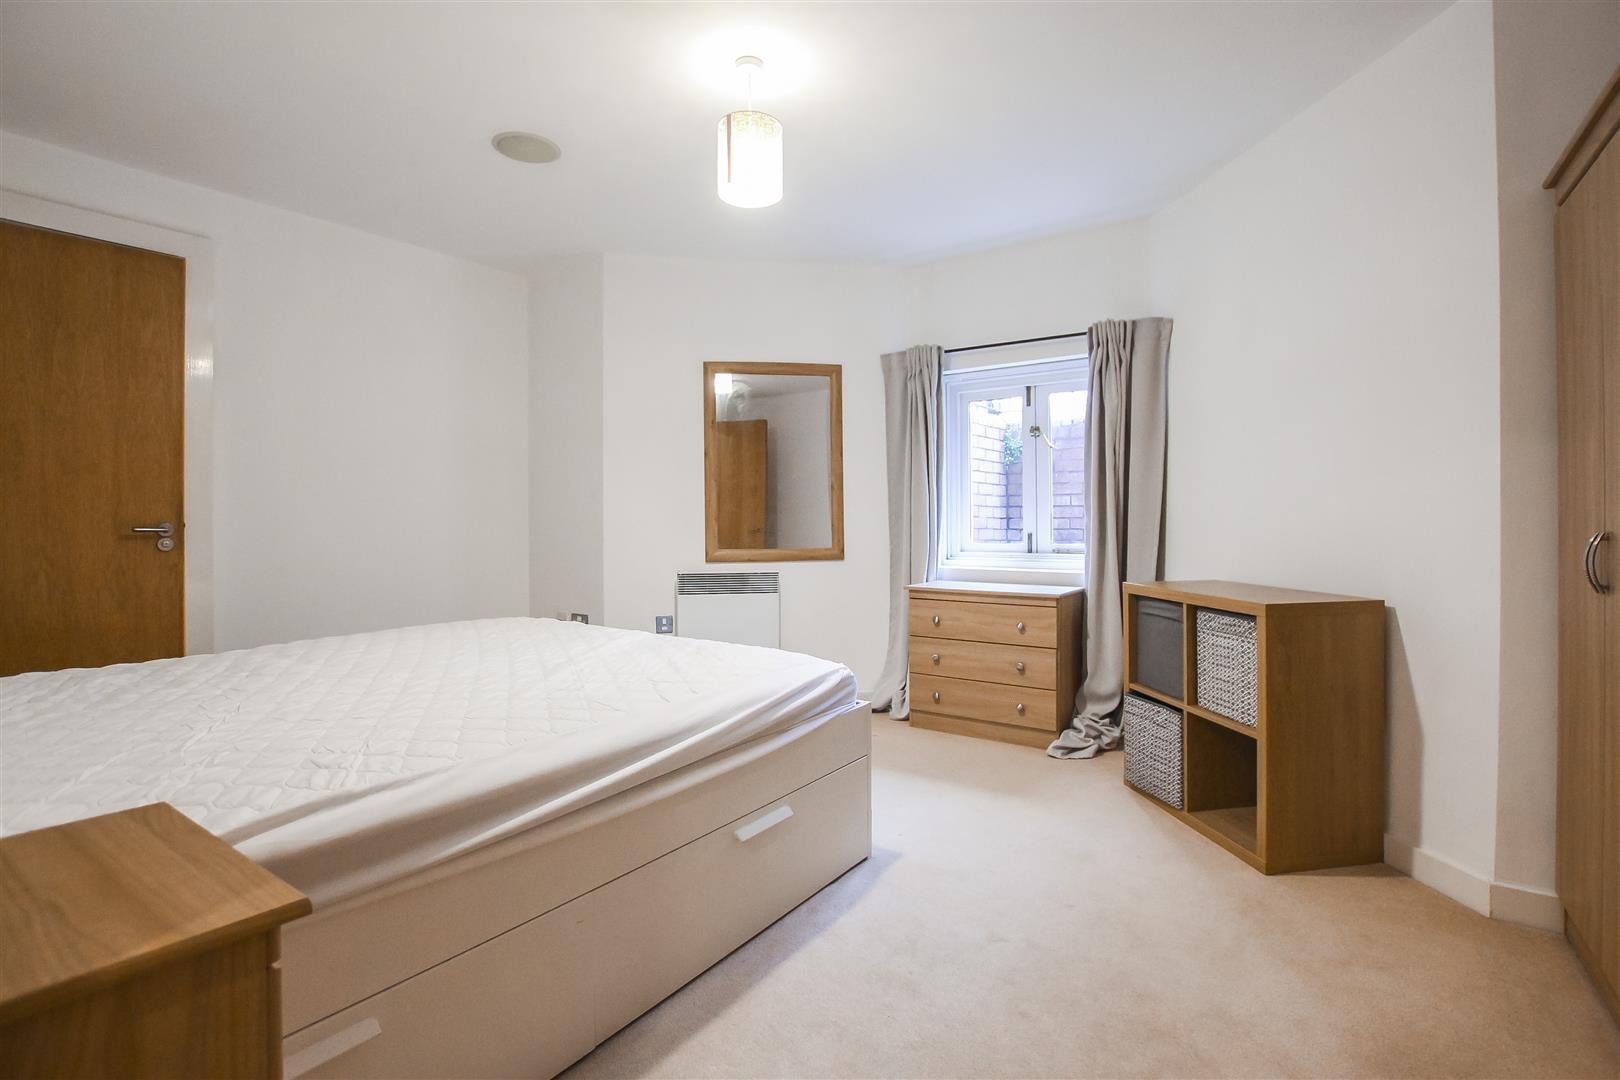 2 Bedroom Apartment For Sale - Main Bedroom